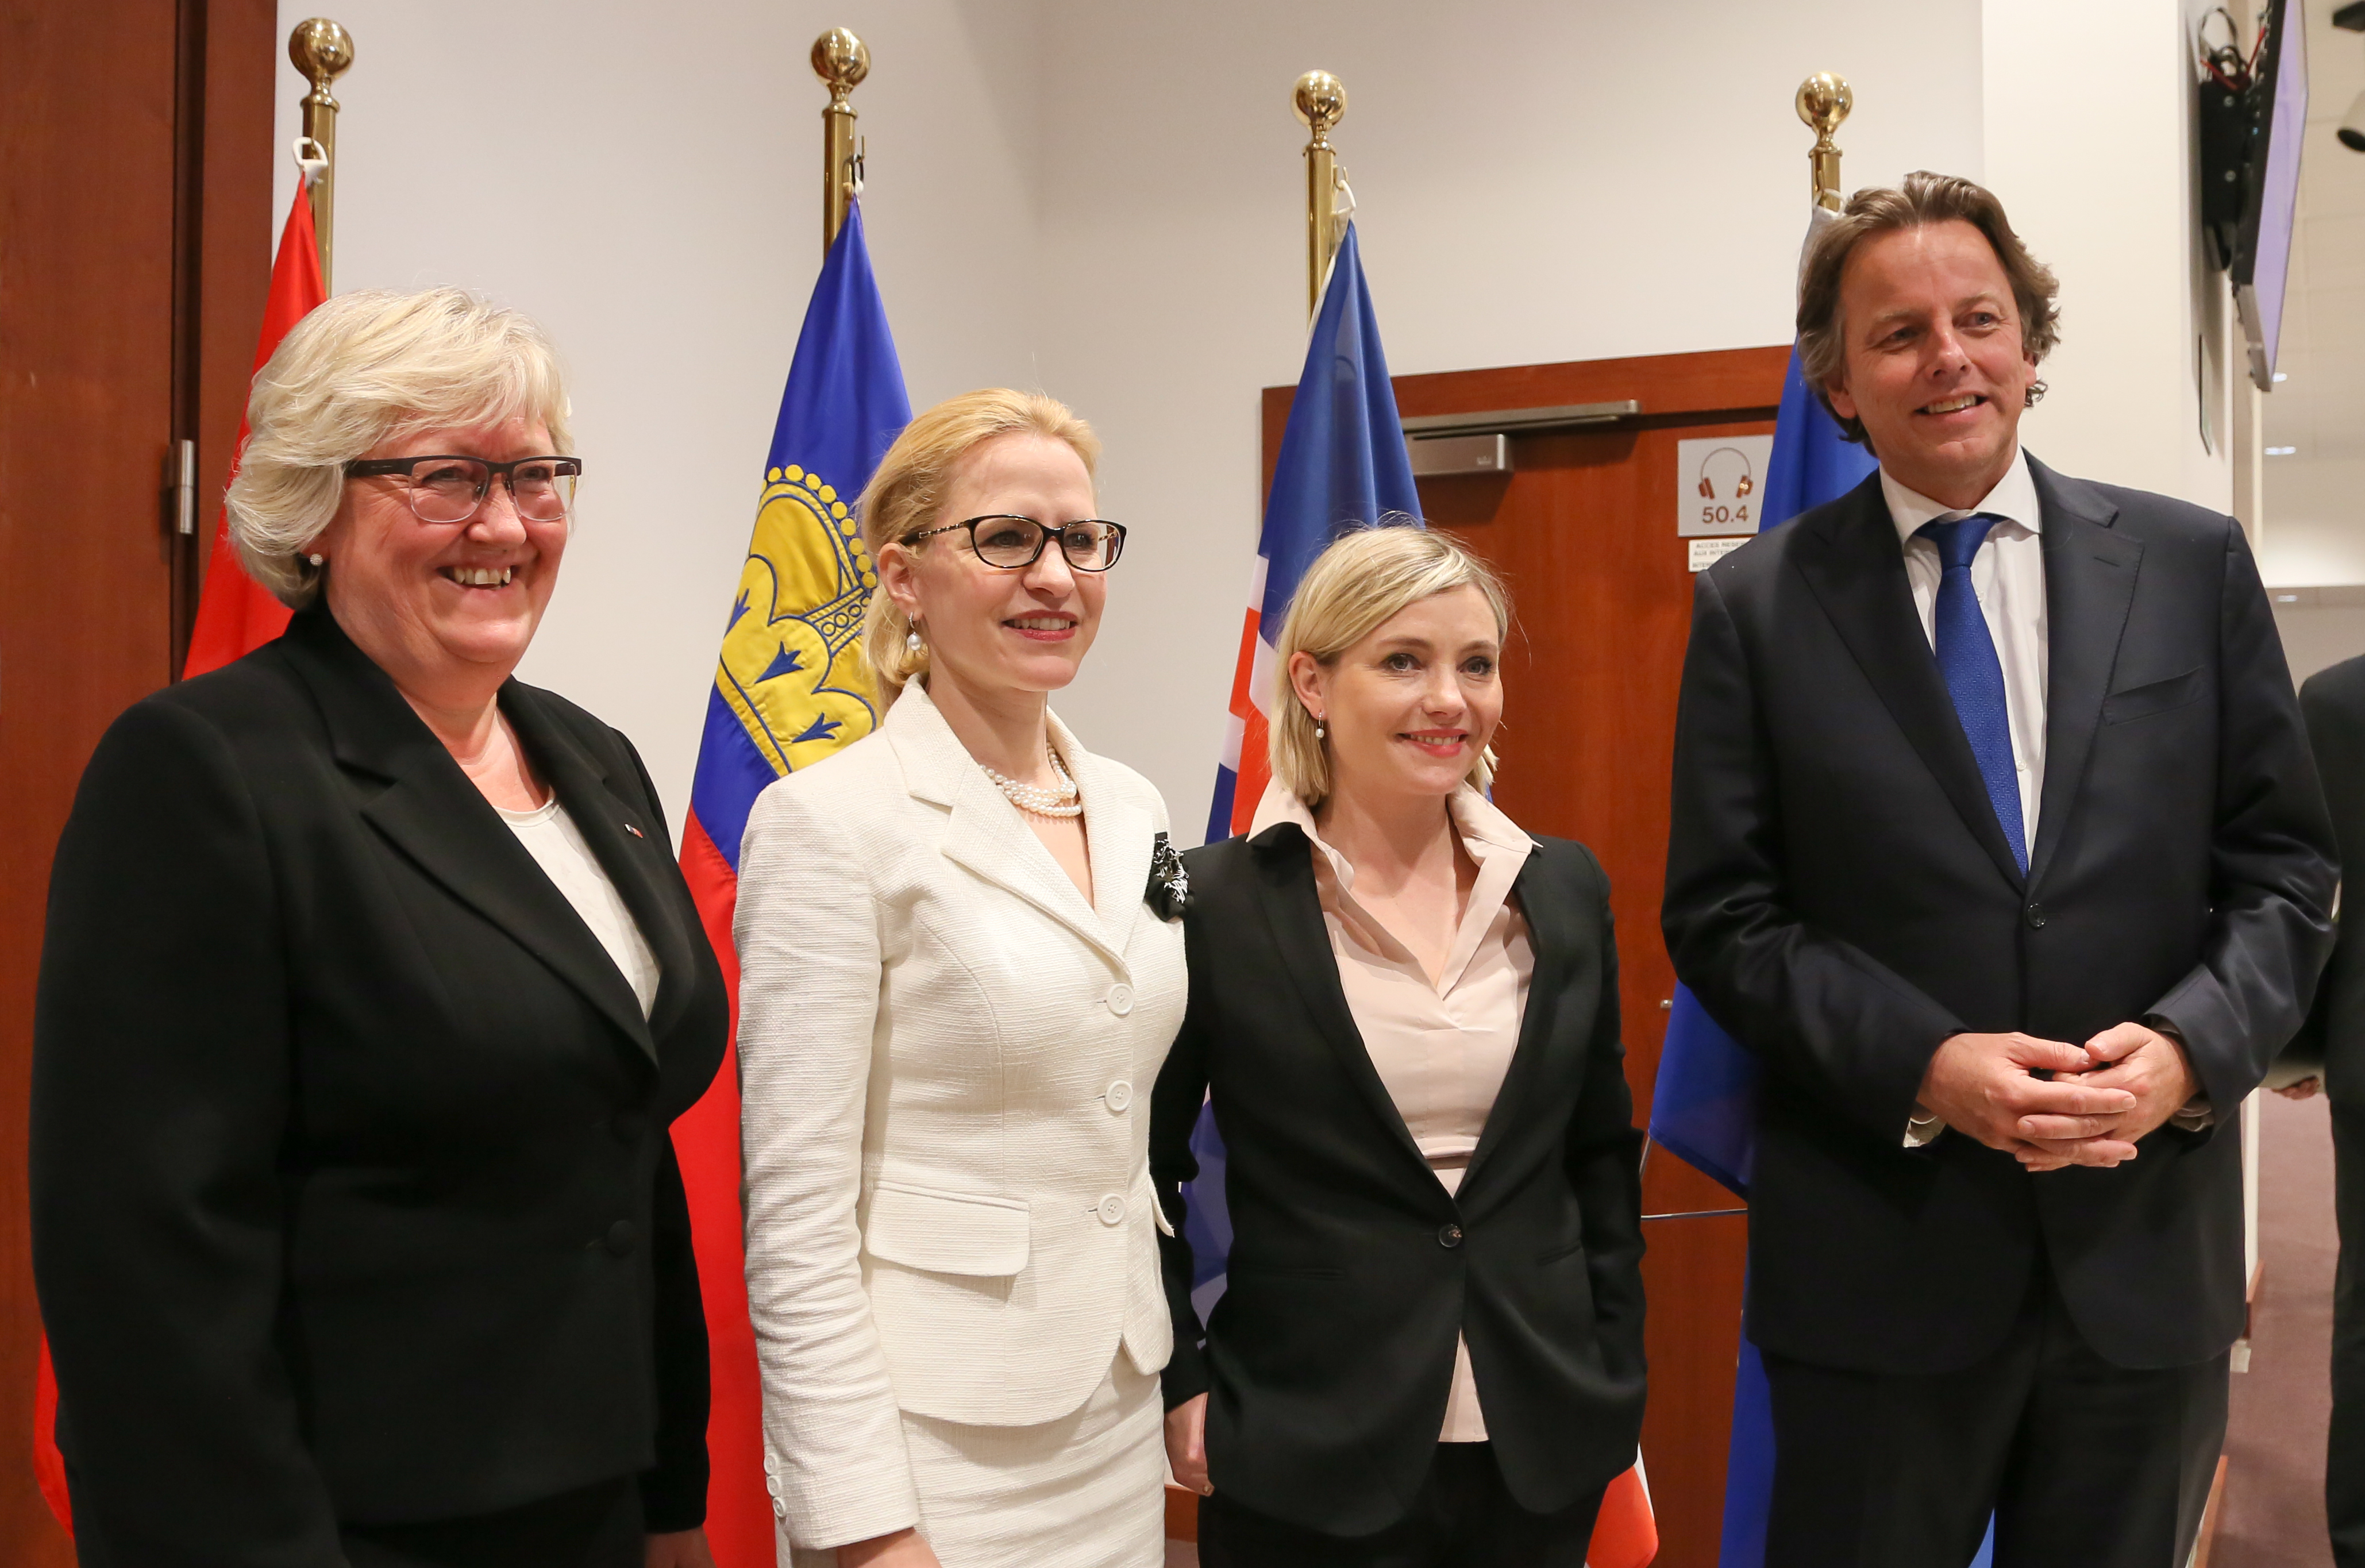 Foreign Ministers of Norway, Liechtenstein, Iceland and the Netherlands standing behind flags for an EEA Council meeting